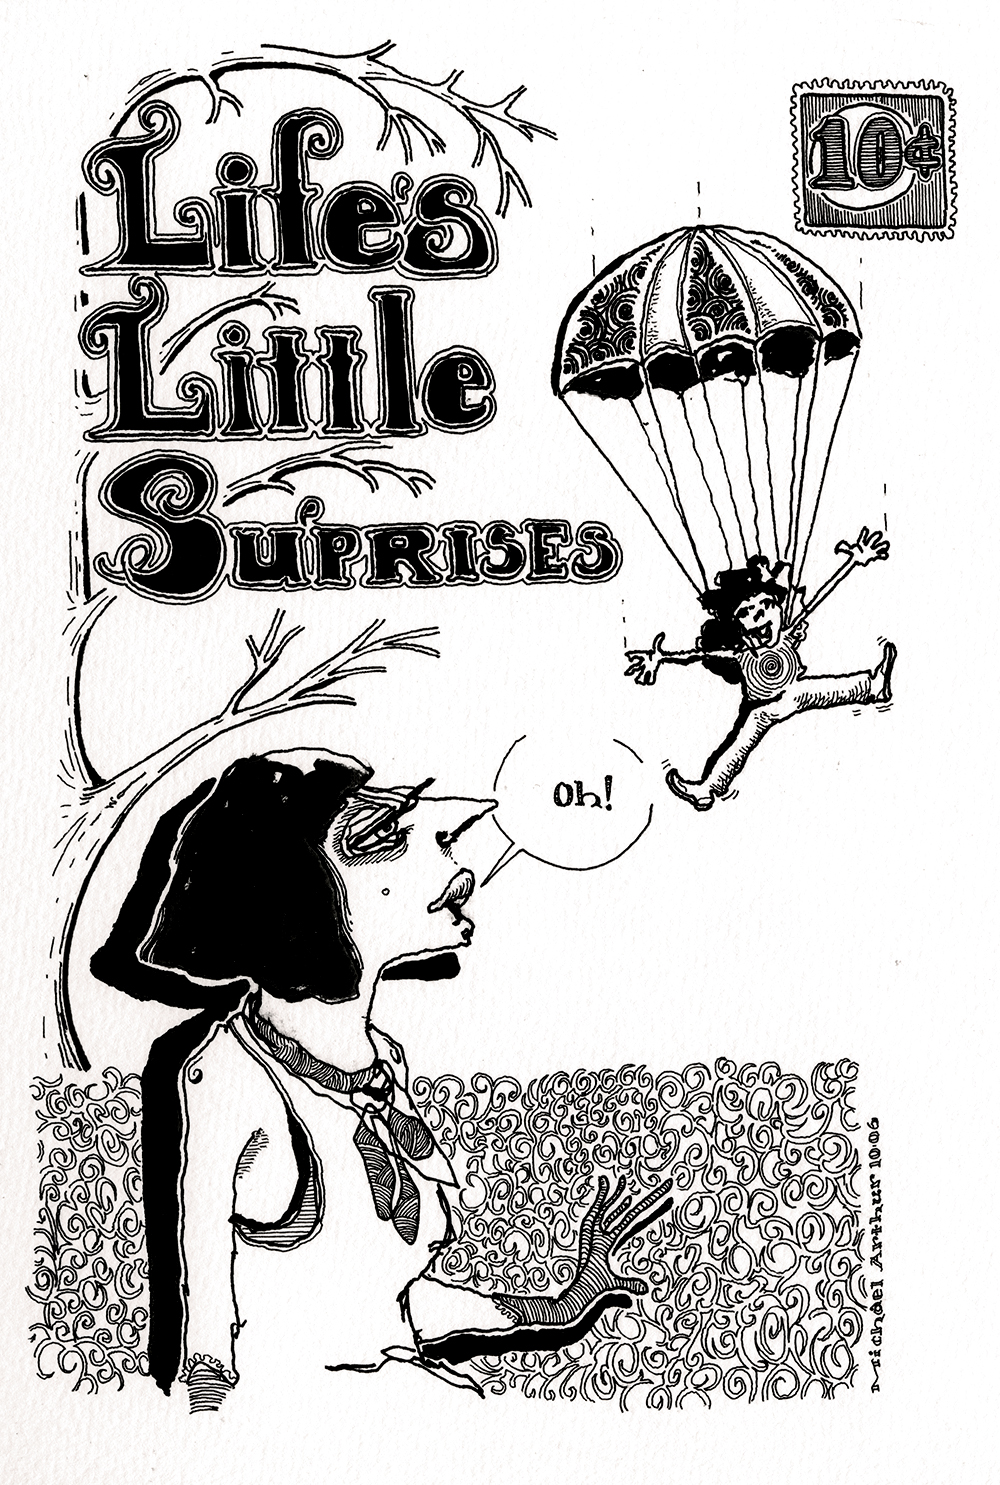 Life's Little Surprises. (from an old sketchbook of mine)